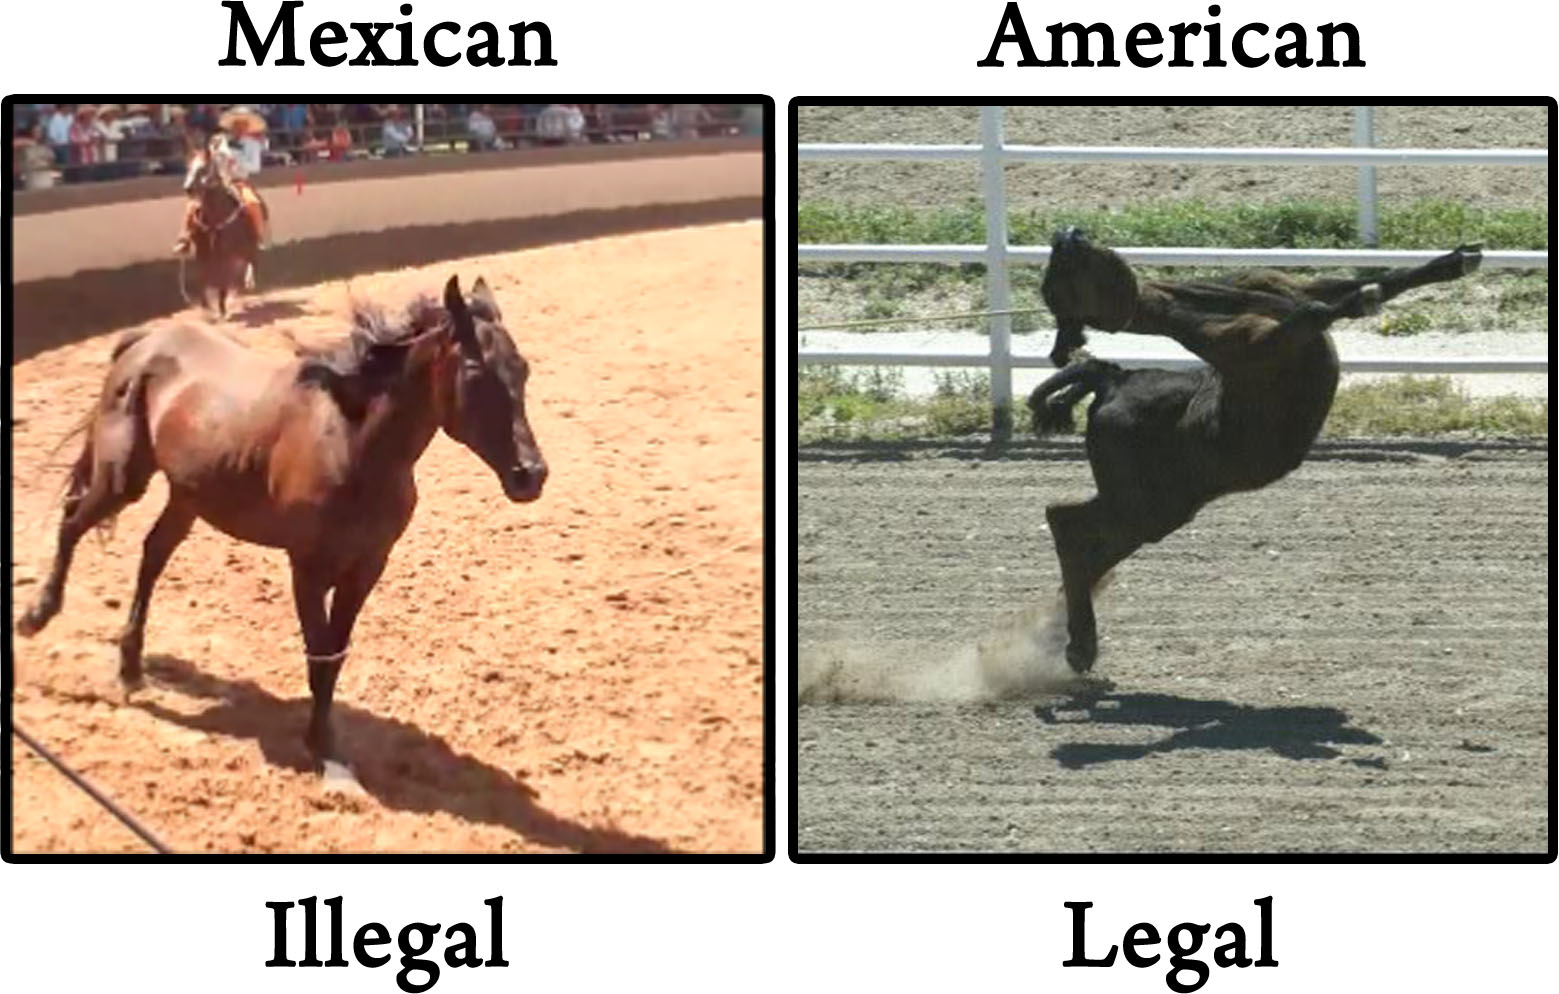 Animal Cruelty Quotes The Truth About Horse Tripping In The U.s. Animal Activist Quotes